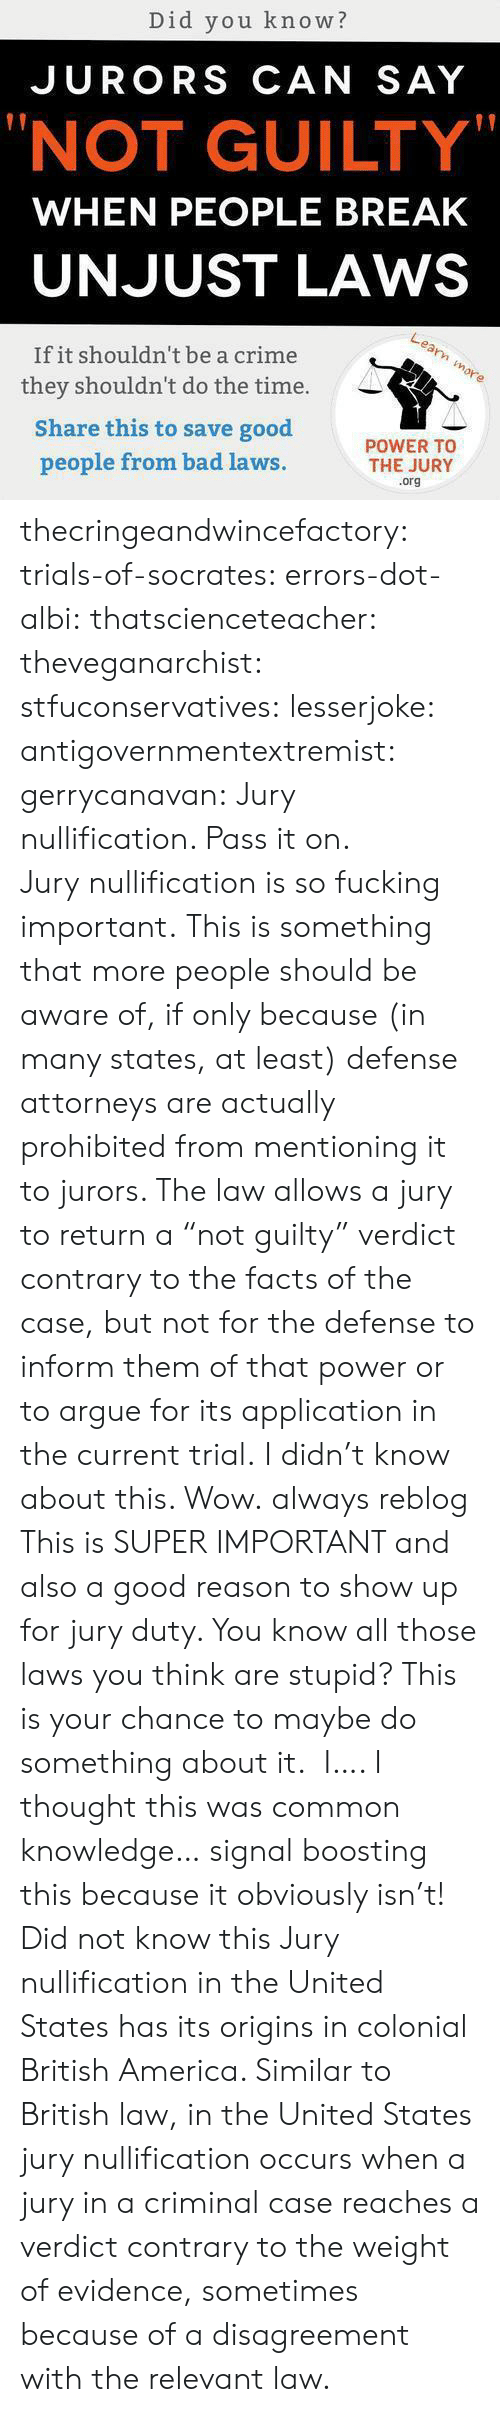 """attorneys: Did you know?  JURORS CAN SAY  """"NOT GUILTY""""  WHEN PEOPLE BREAK  UNJUST LAWS  If it shouldn't be a crime  they shouldn't do the time.  Share this to save good  people from bad laws  POWER TO  THE JURY  .org thecringeandwincefactory:  trials-of-socrates:   errors-dot-albi:  thatscienceteacher:  theveganarchist:  stfuconservatives:  lesserjoke:  antigovernmentextremist:  gerrycanavan:  Jury nullification. Pass it on.  Jurynullificationis so fucking important.  This is something that more people should be aware of, if only because (in many states, at least) defense attorneys are actually prohibited from mentioning it to jurors. The law allows a jury to return a """"not guilty"""" verdict contrary to the facts of the case, but not for the defense to inform them of that power or to argue for its application in the current trial.  I didn't know about this. Wow.  always reblog  This is SUPER IMPORTANT and also a good reason to show up for jury duty. You know all those laws you think are stupid? This is your chance to maybe do something about it.  I…. I thought this was common knowledge… signal boosting this because it obviously isn't!  Did not know this   Jury nullification in the United States has its origins in colonial British America. Similar to British law, in the United States jury nullification occurs when a jury in a criminal case reaches a verdict contrary to the weight of evidence, sometimes because of a disagreement with the relevant law."""